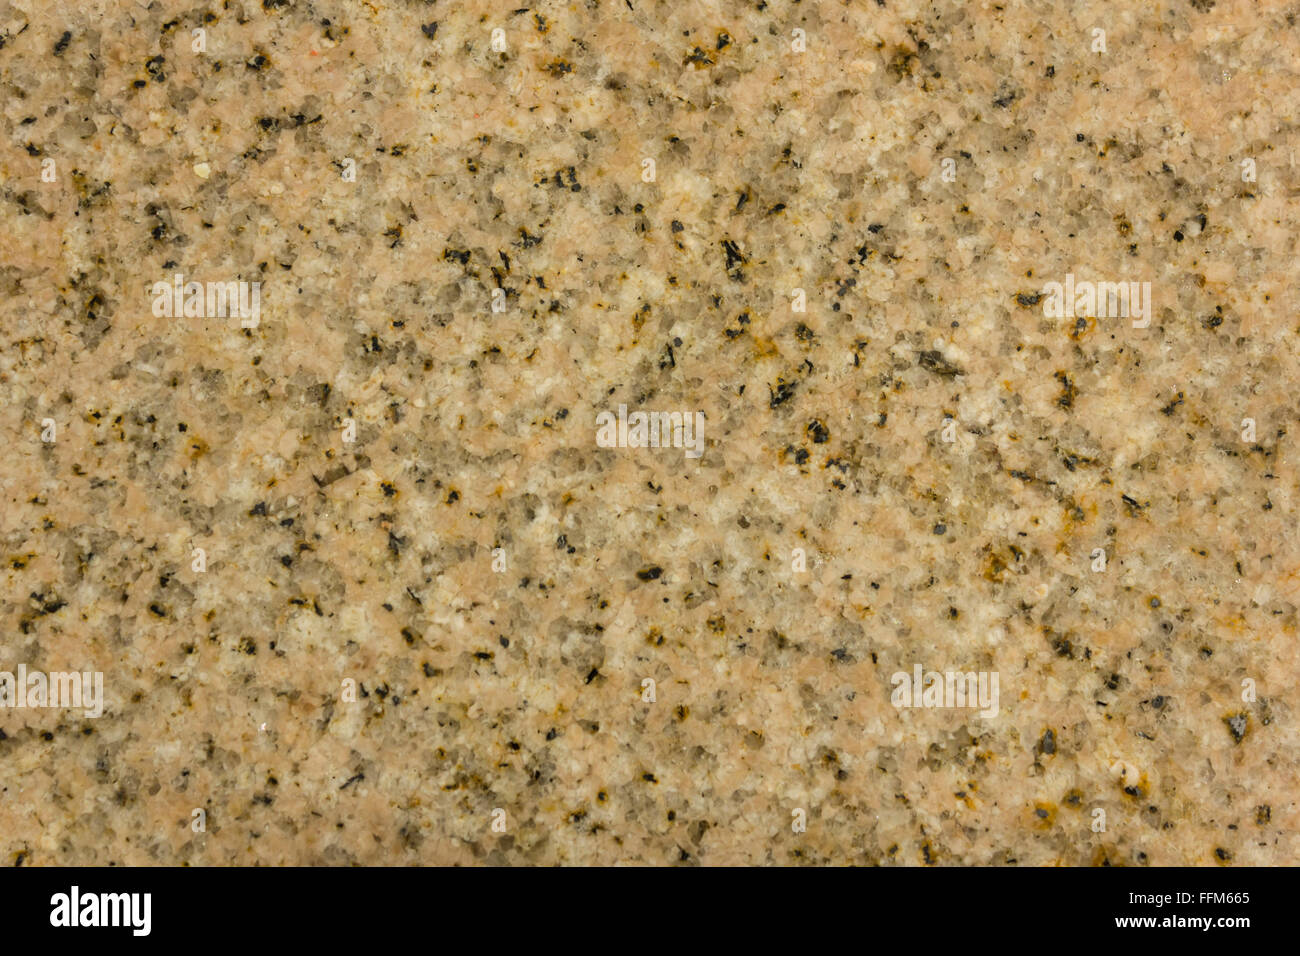 A Light Brown Beige Granite Counter Top With Flecks Of